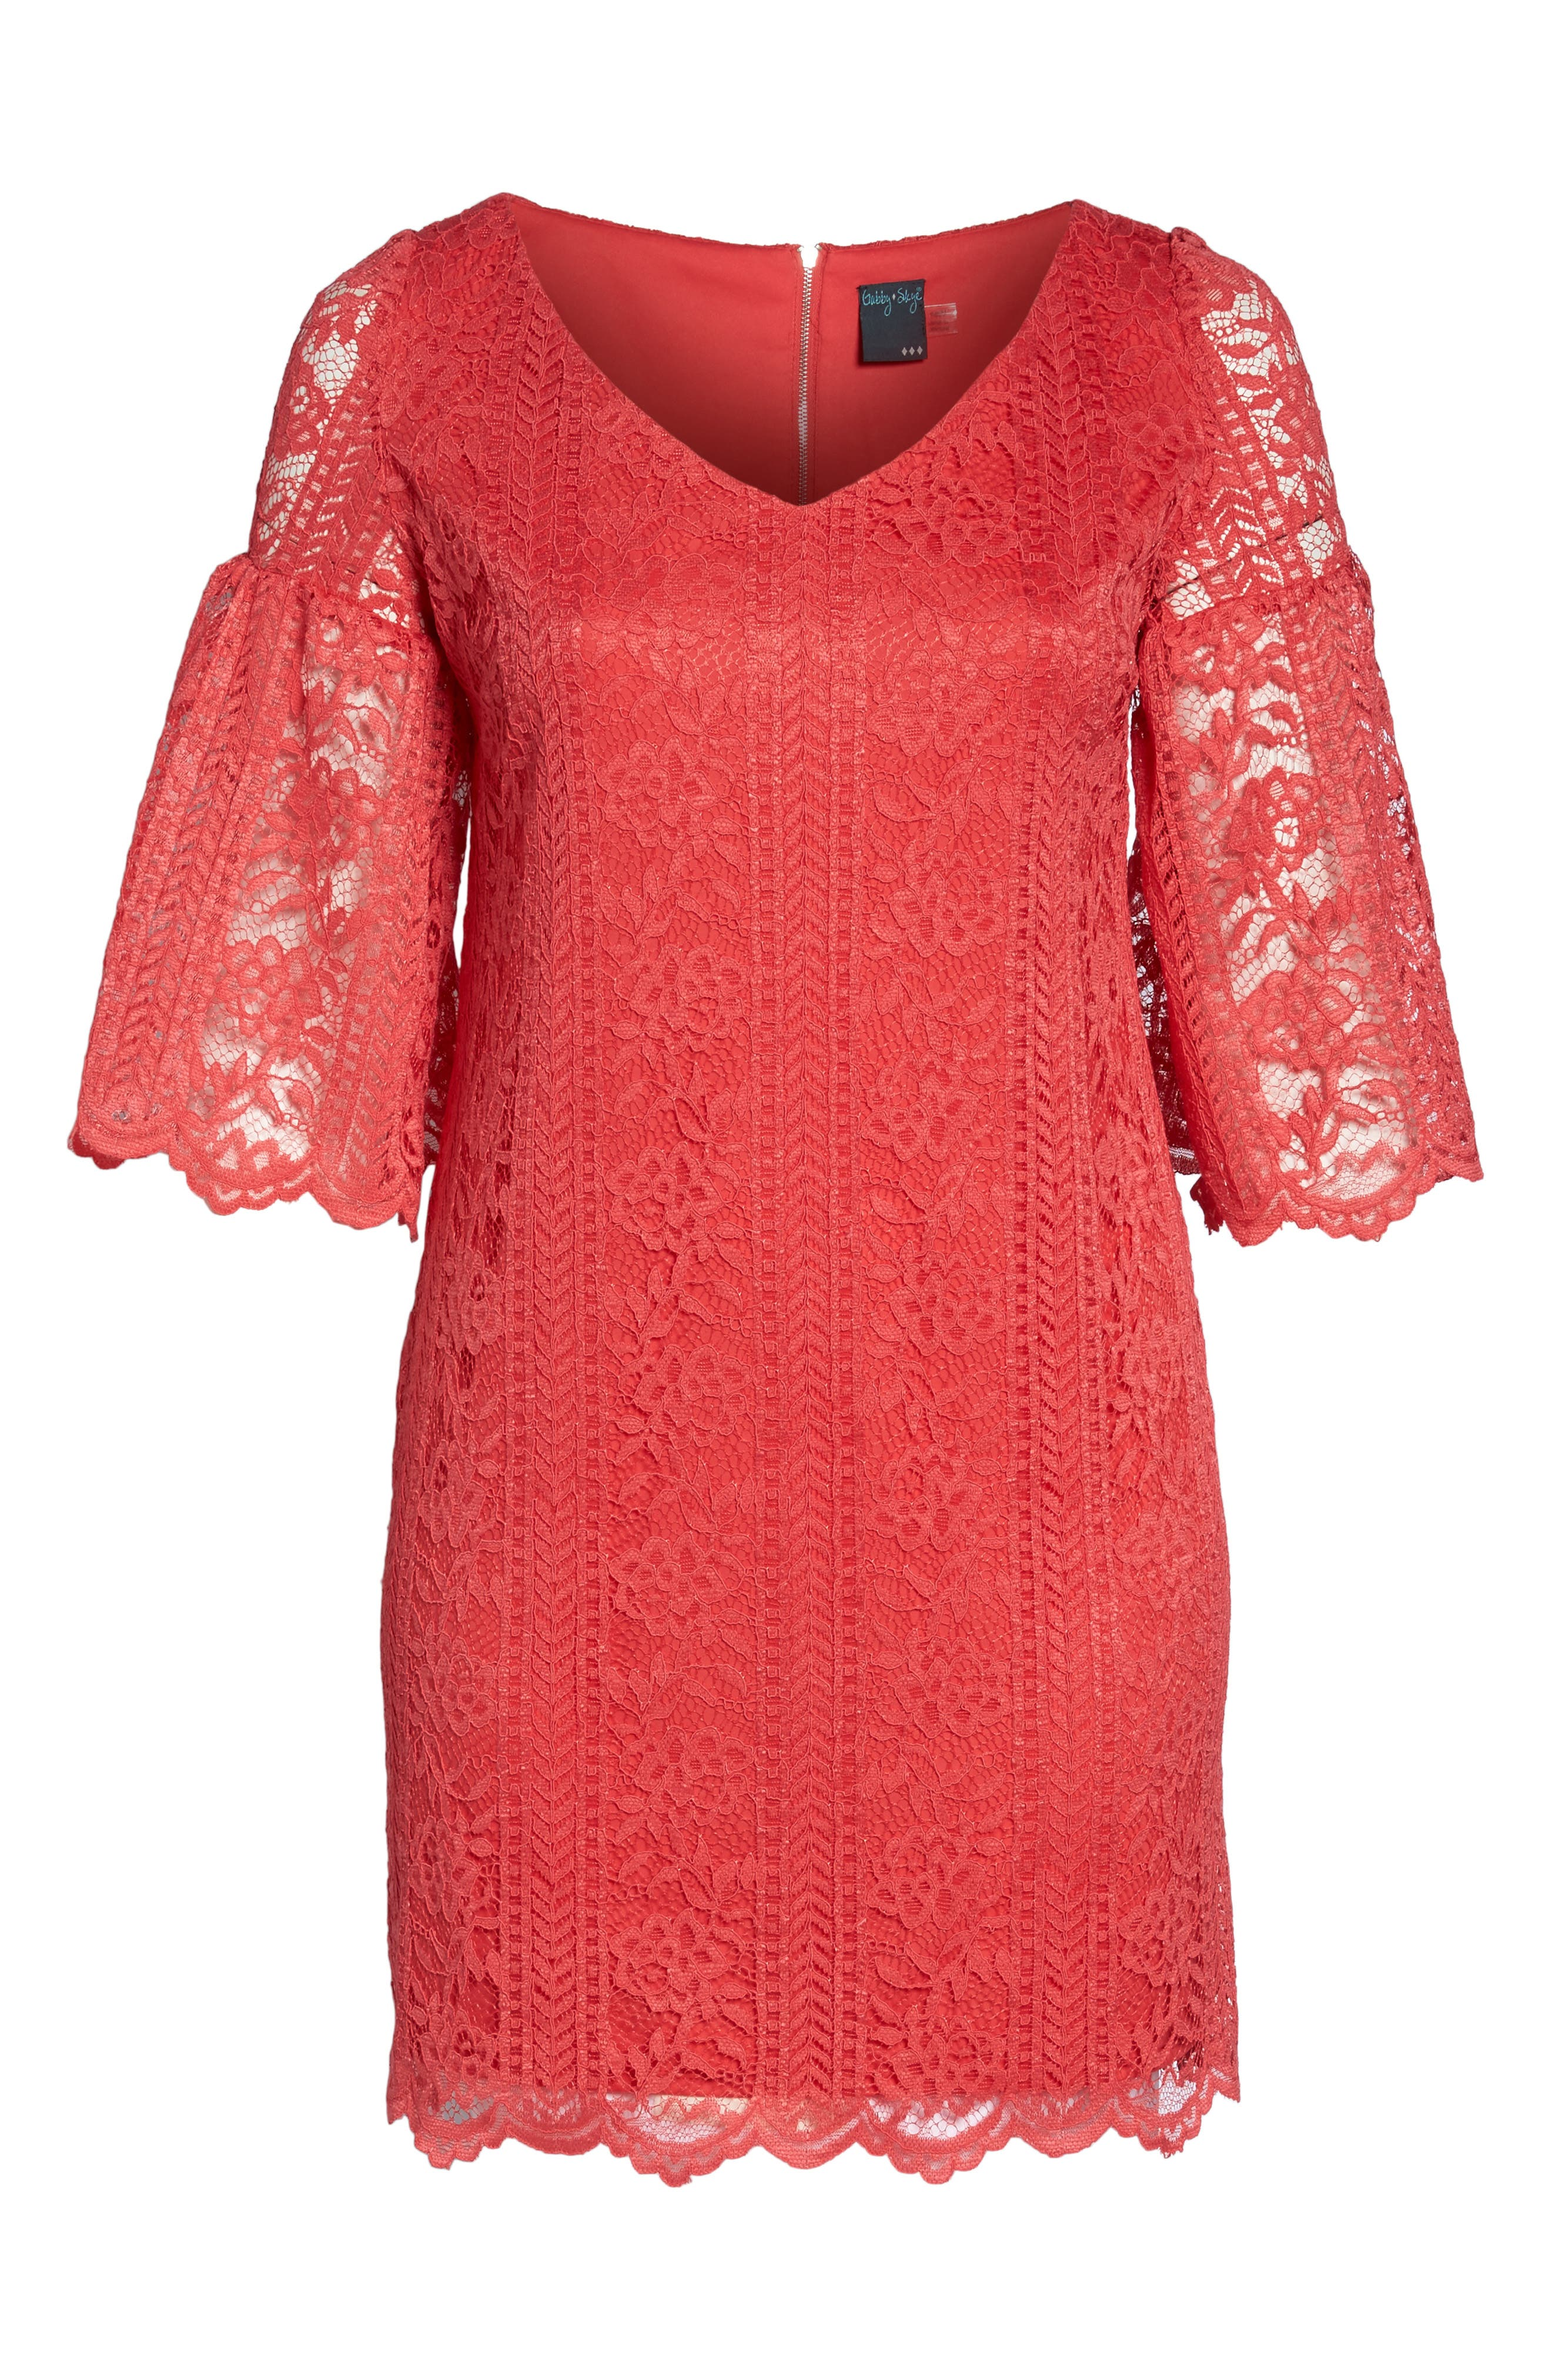 Bell Sleeve Lace Shift Dress,                             Alternate thumbnail 6, color,                             655